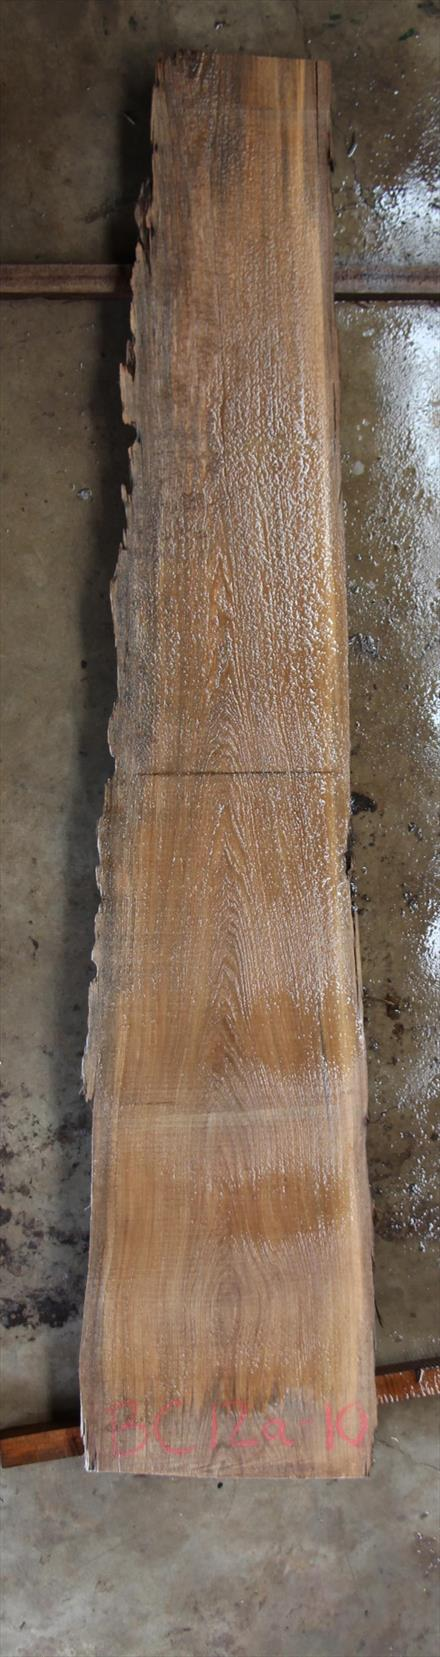 Buried Cypress Slab BC012a-10